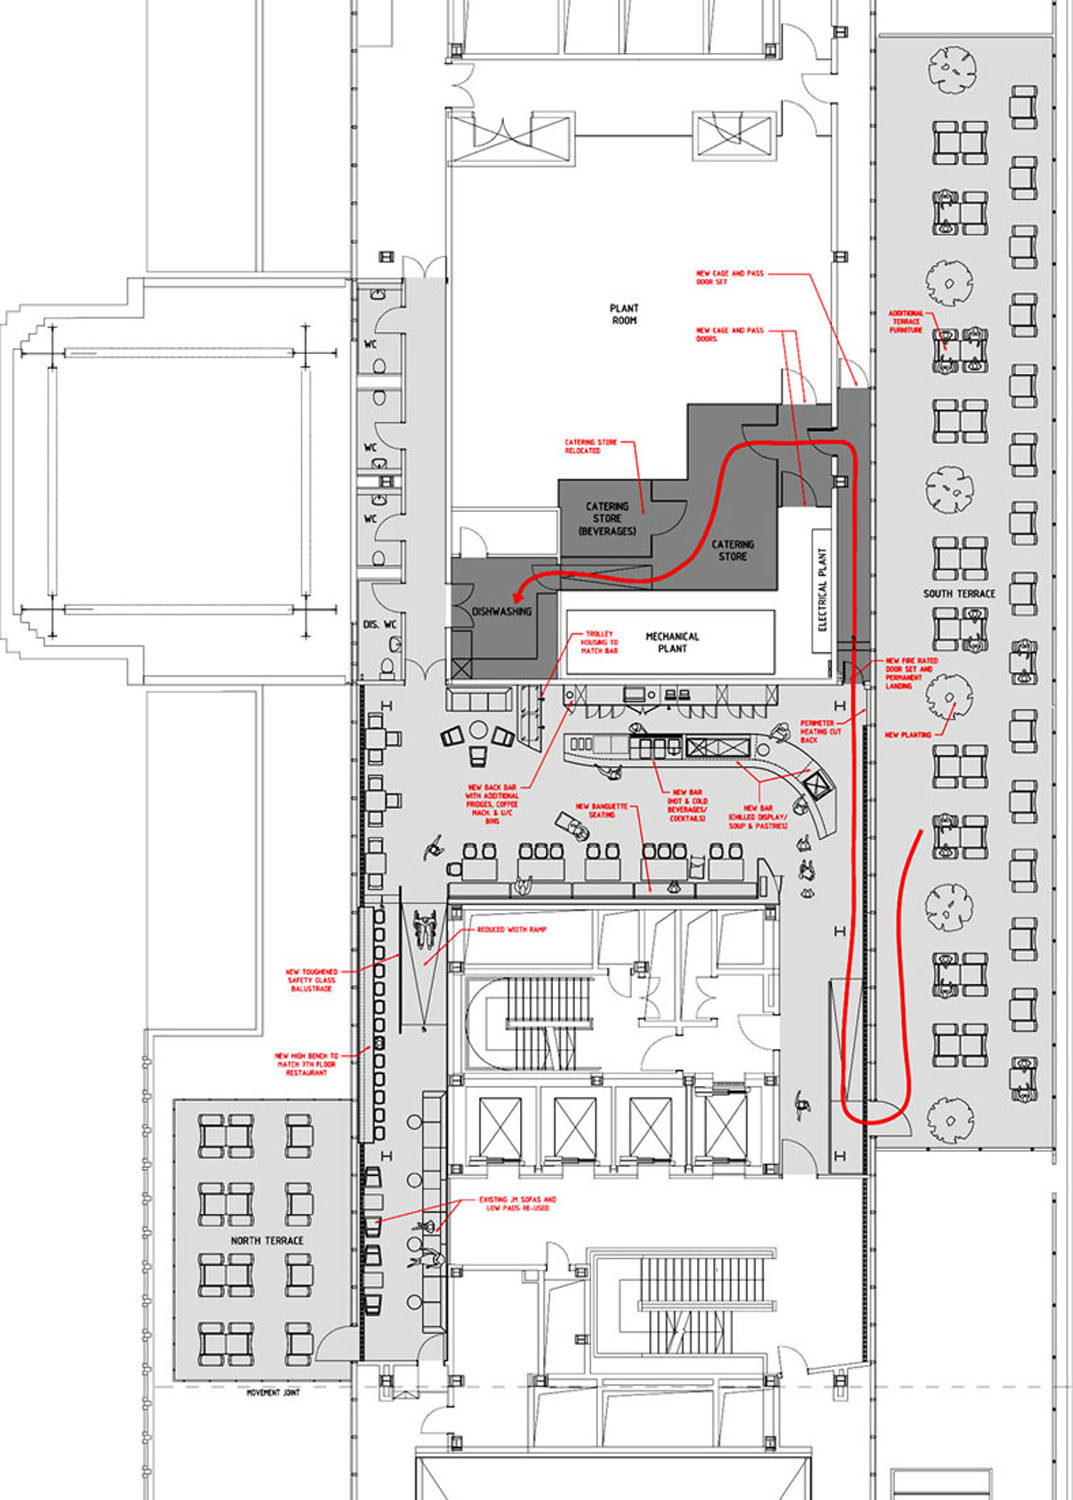 Tate New bar concept - base option with plant room route #2.jpg